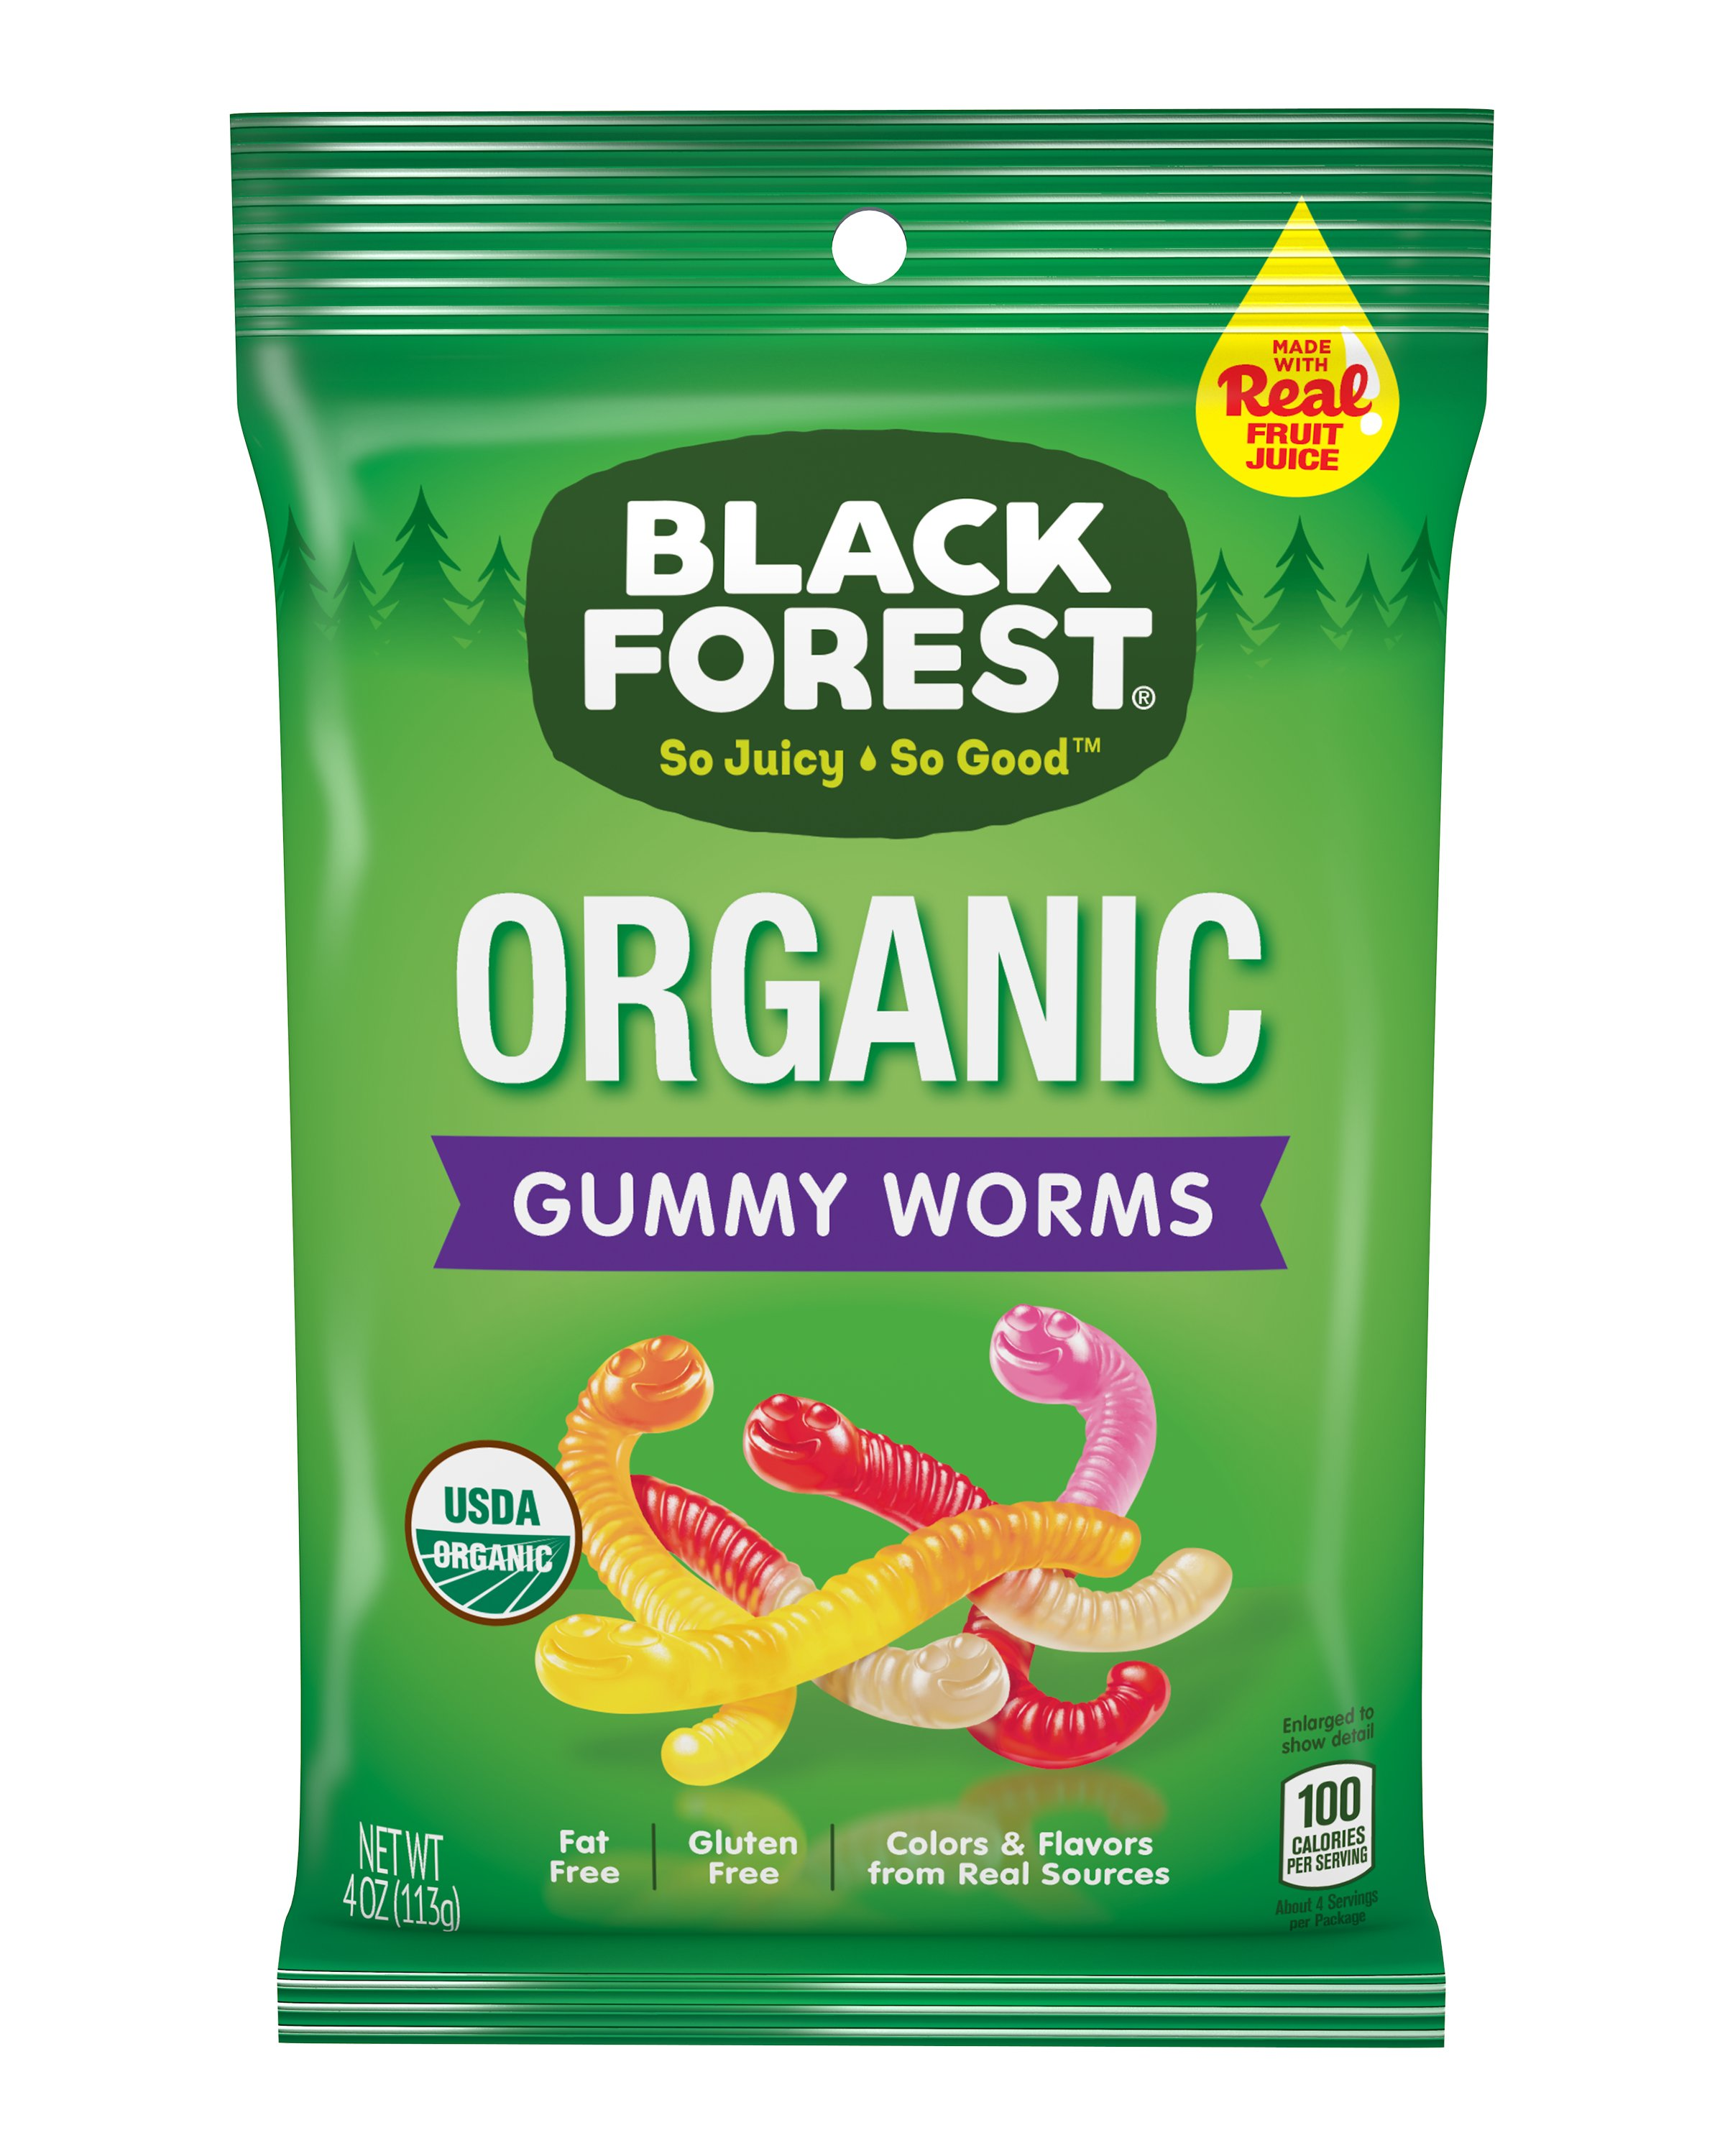 Black Forest Organic Gummies Worm Candies, 4 Oz.